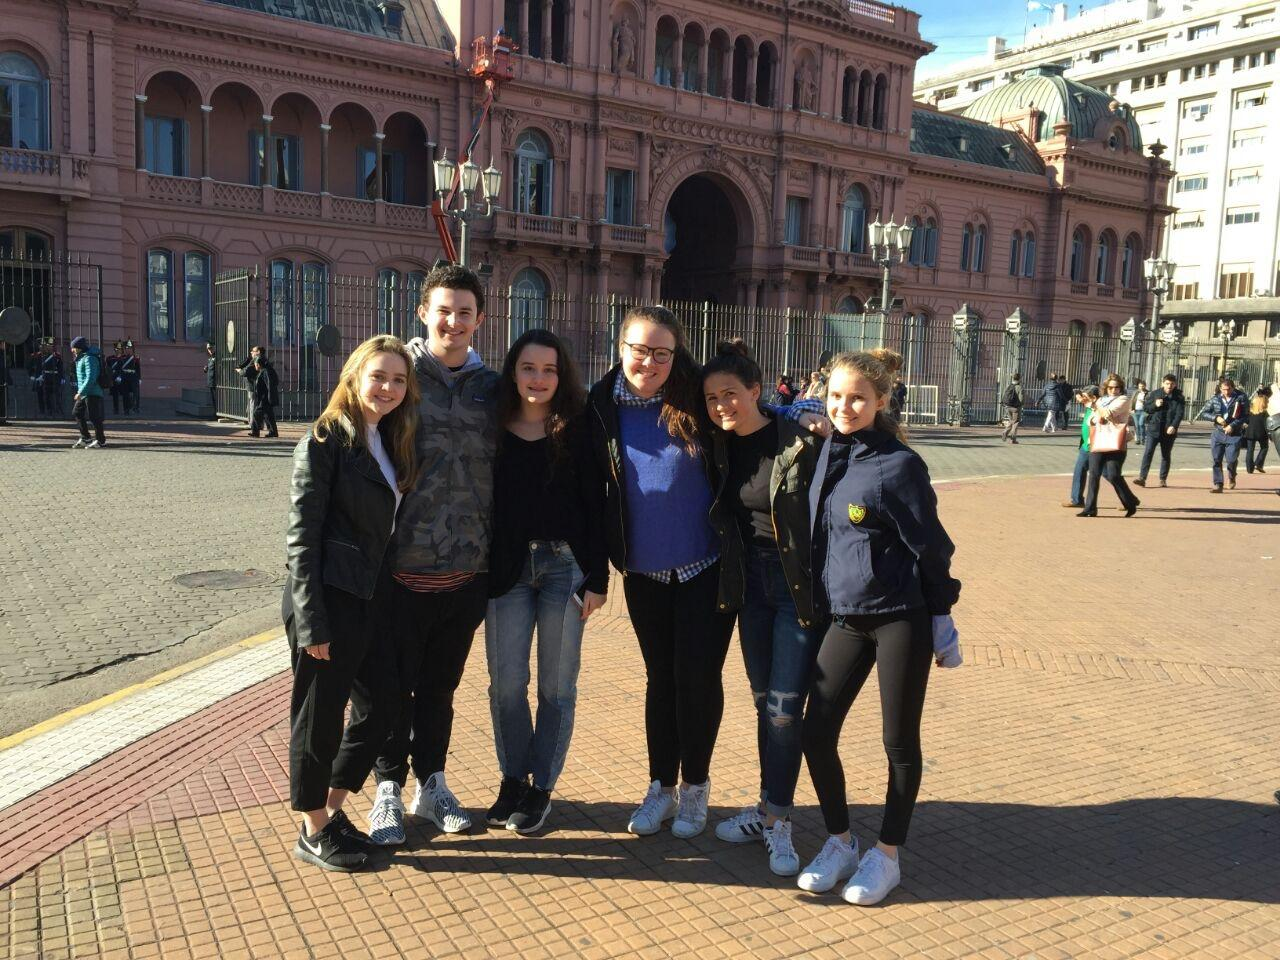 Students+from+the+Northlands+School+in+Buenos+Aires%2C+Argentina+arrived+Sunday.